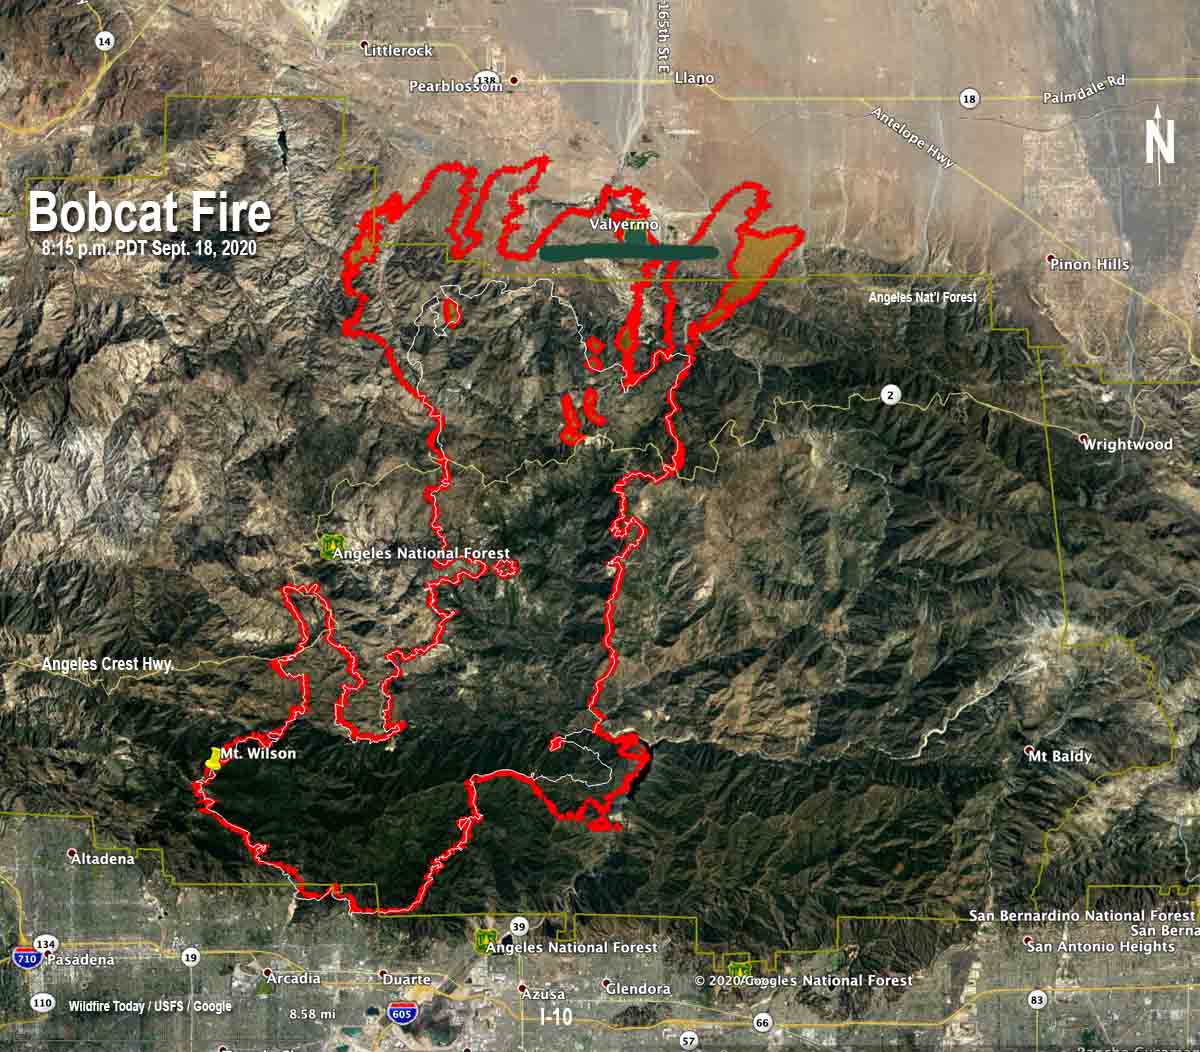 Bobcat Fire map